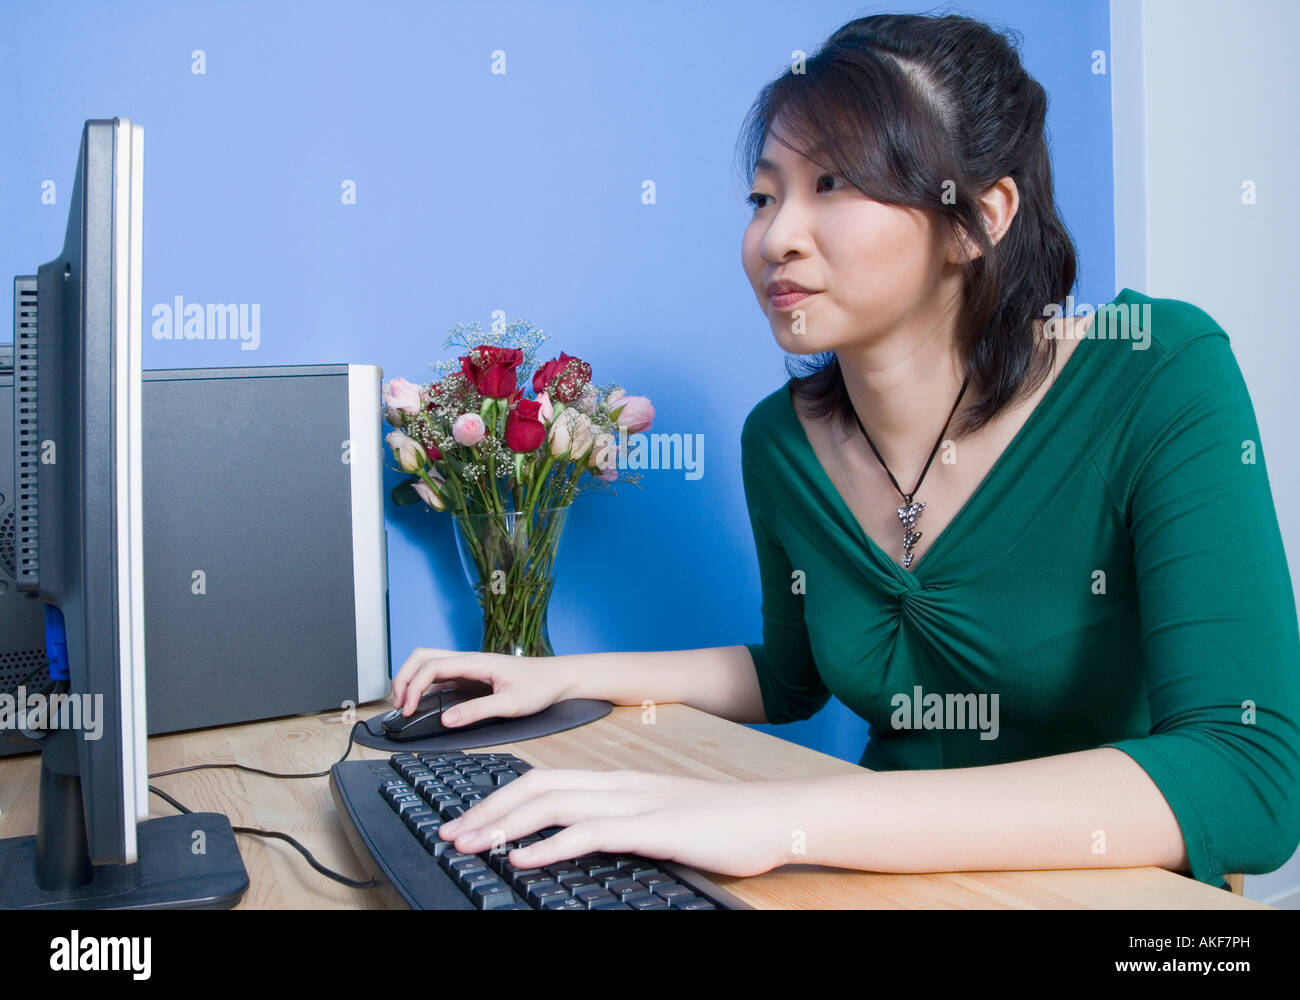 Side profile of a young woman using a computer - Stock Image